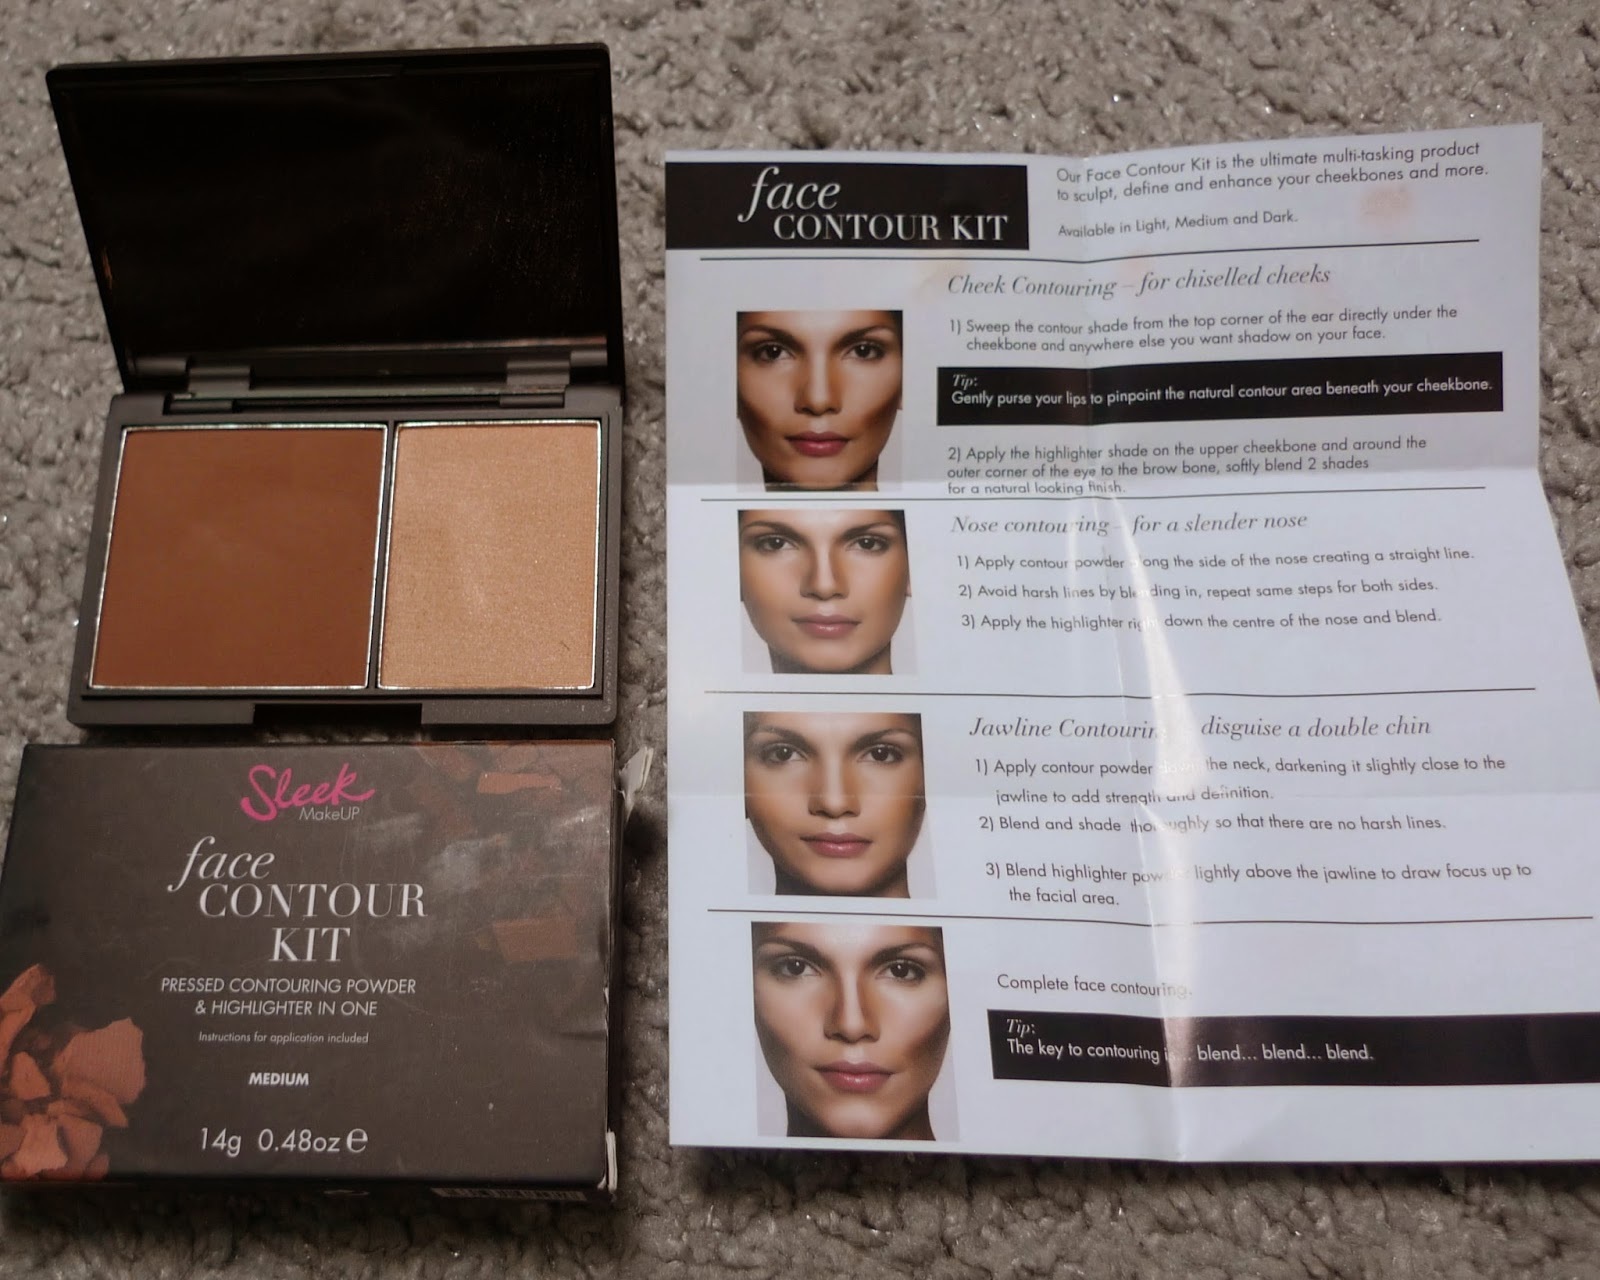 Sleek Contour kit in medium for that chiselled Kim Kardashian look